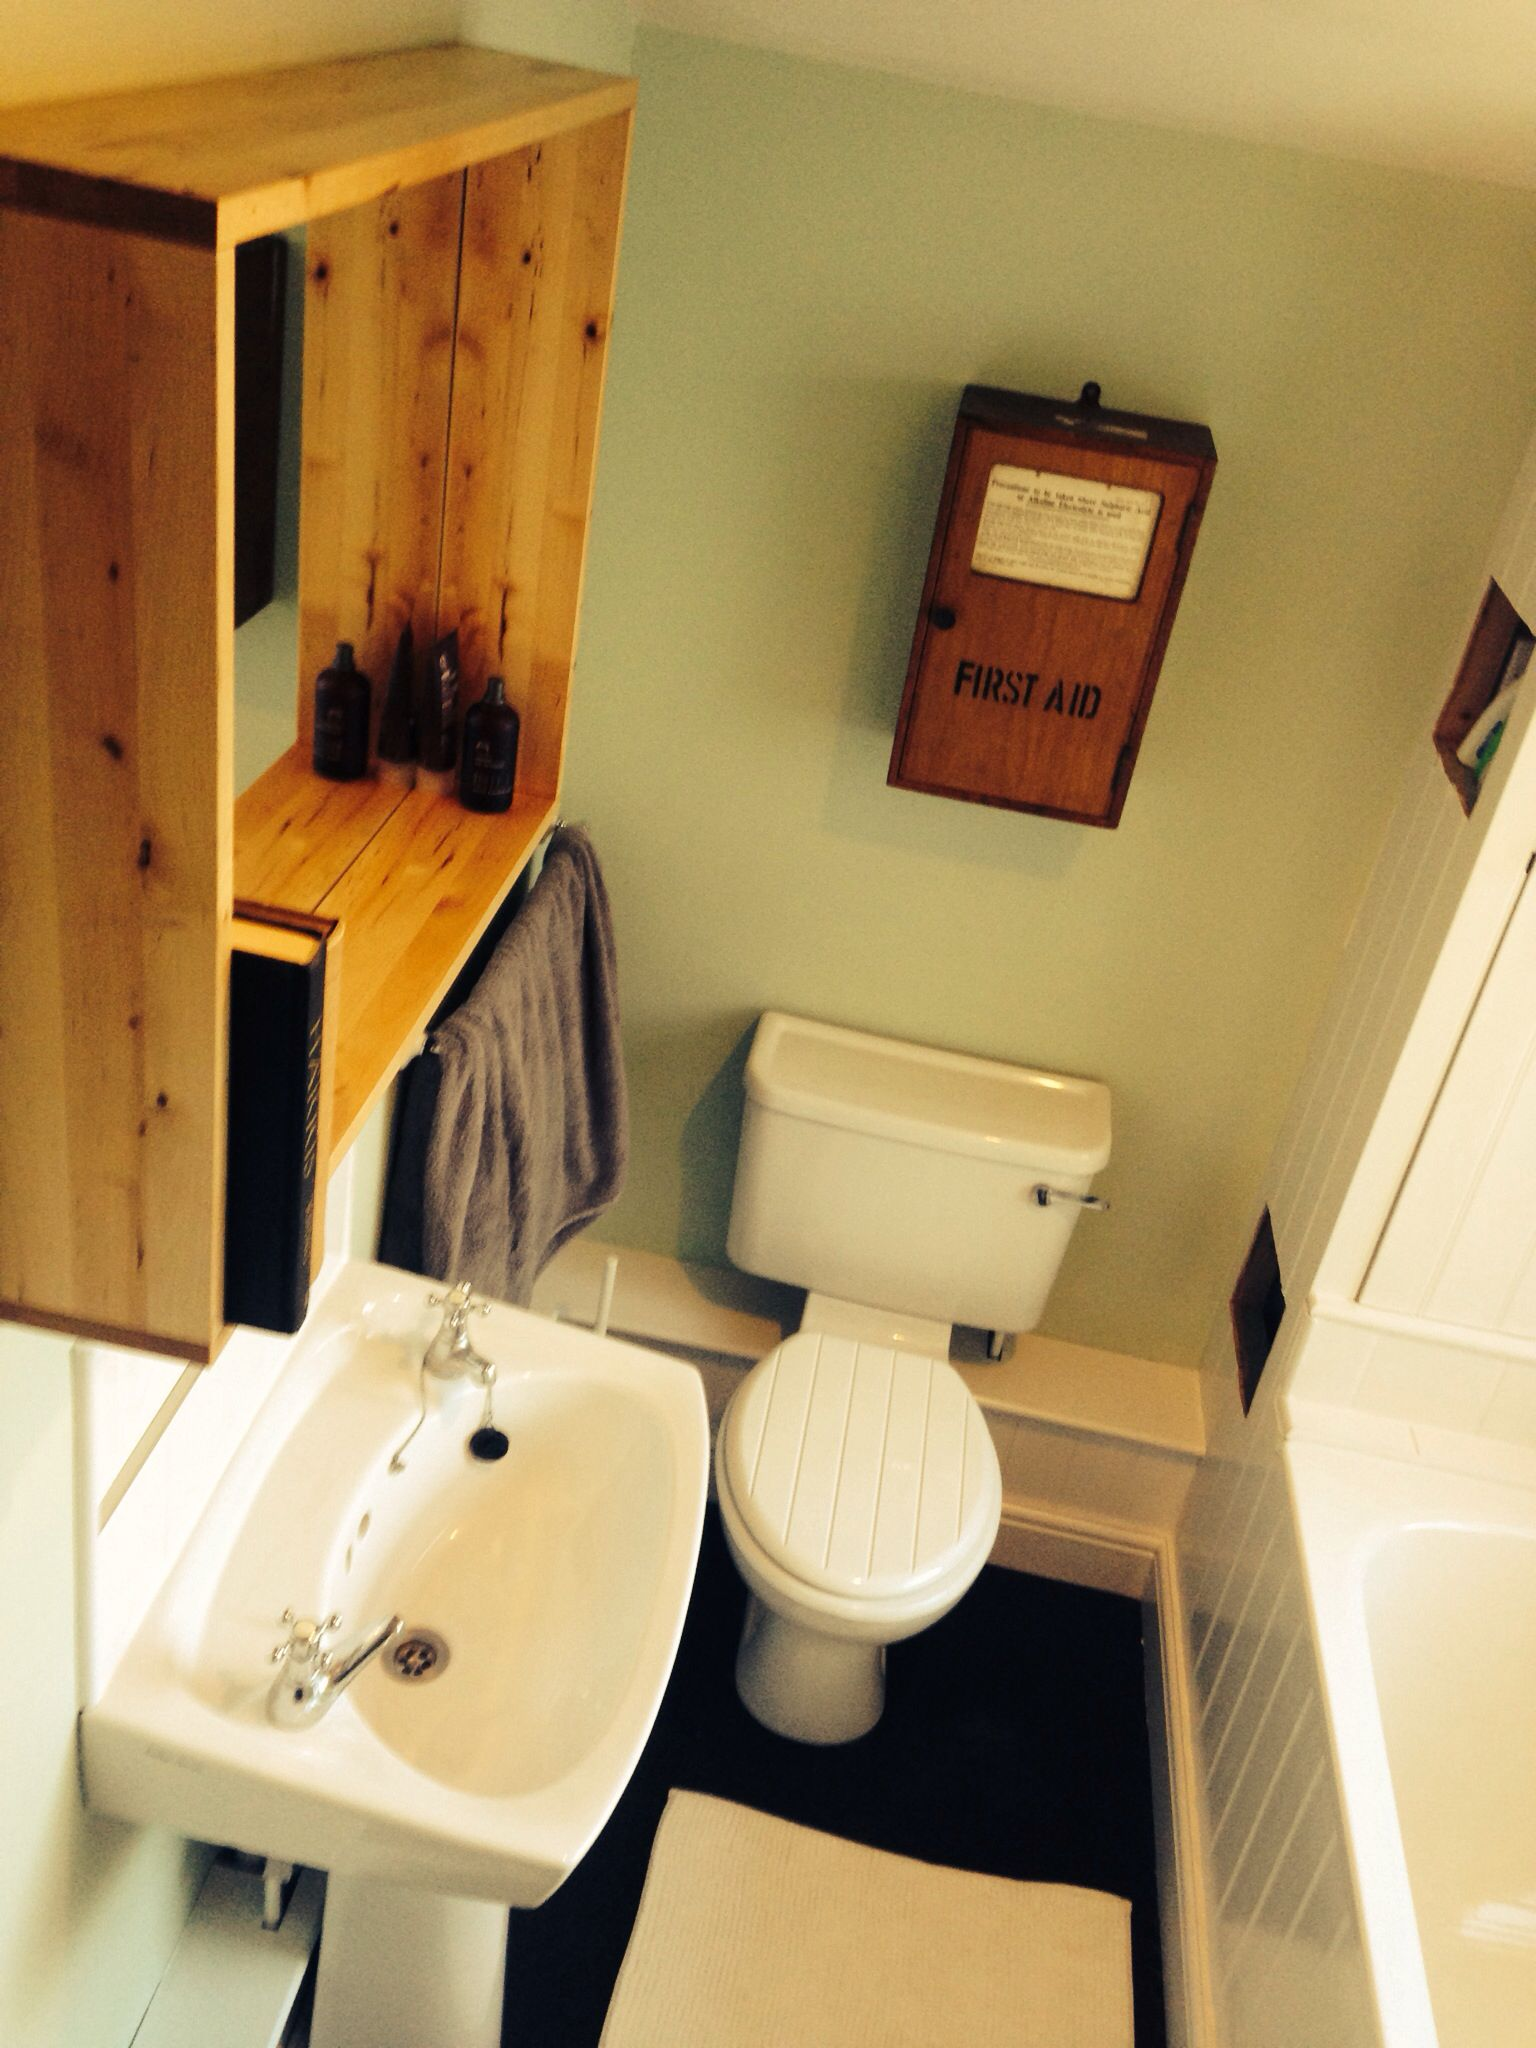 New bathroom with willow tree by Dulux and an old first aid box ...